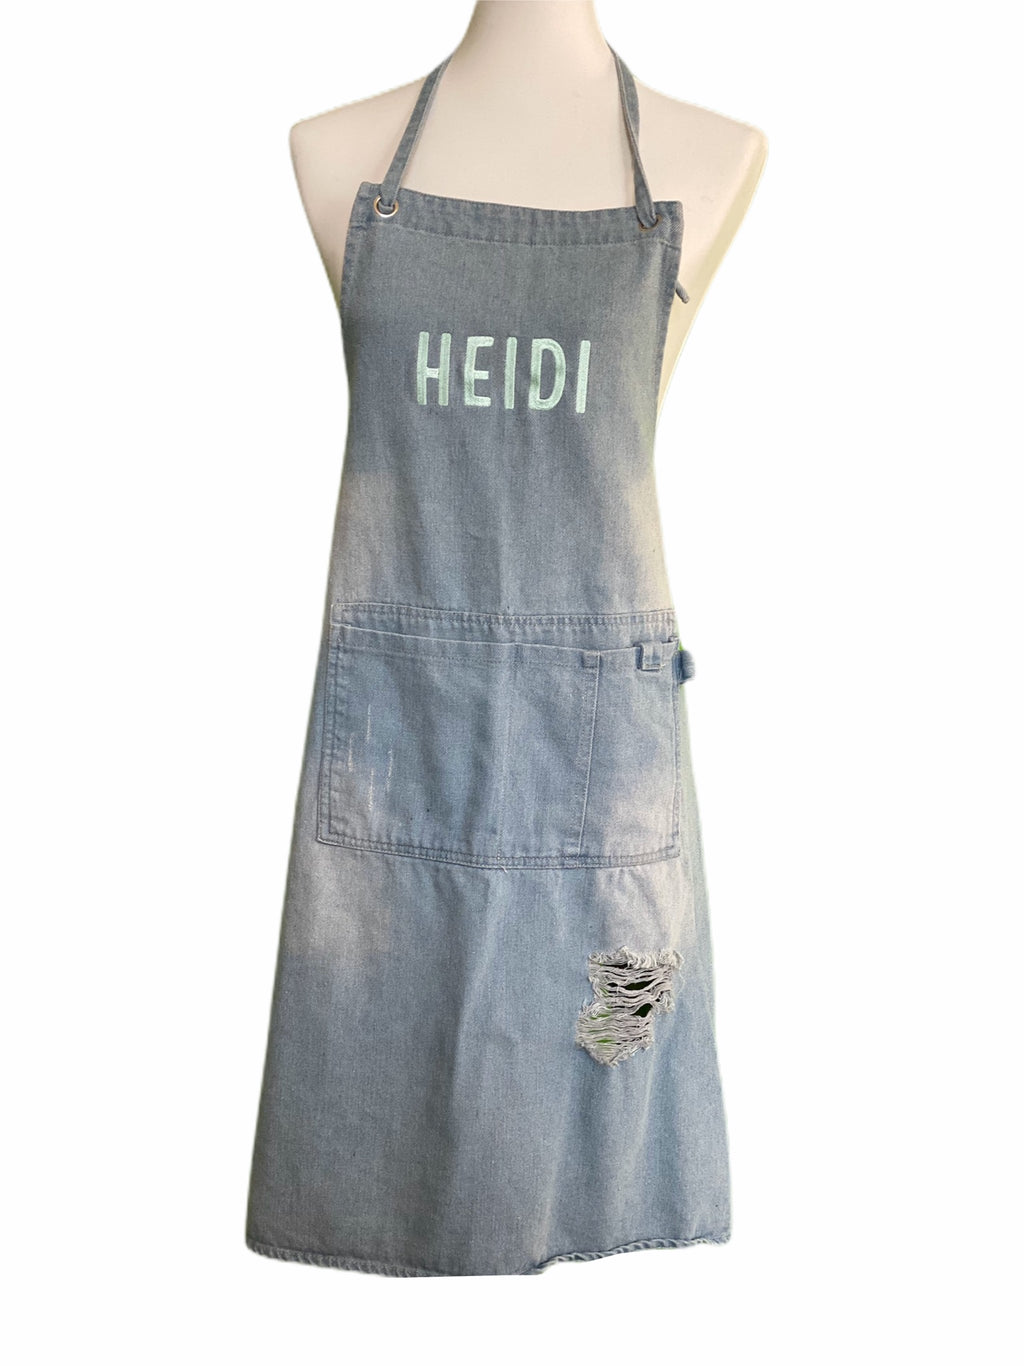 Heidi and Paul cooking apron made of washed denim